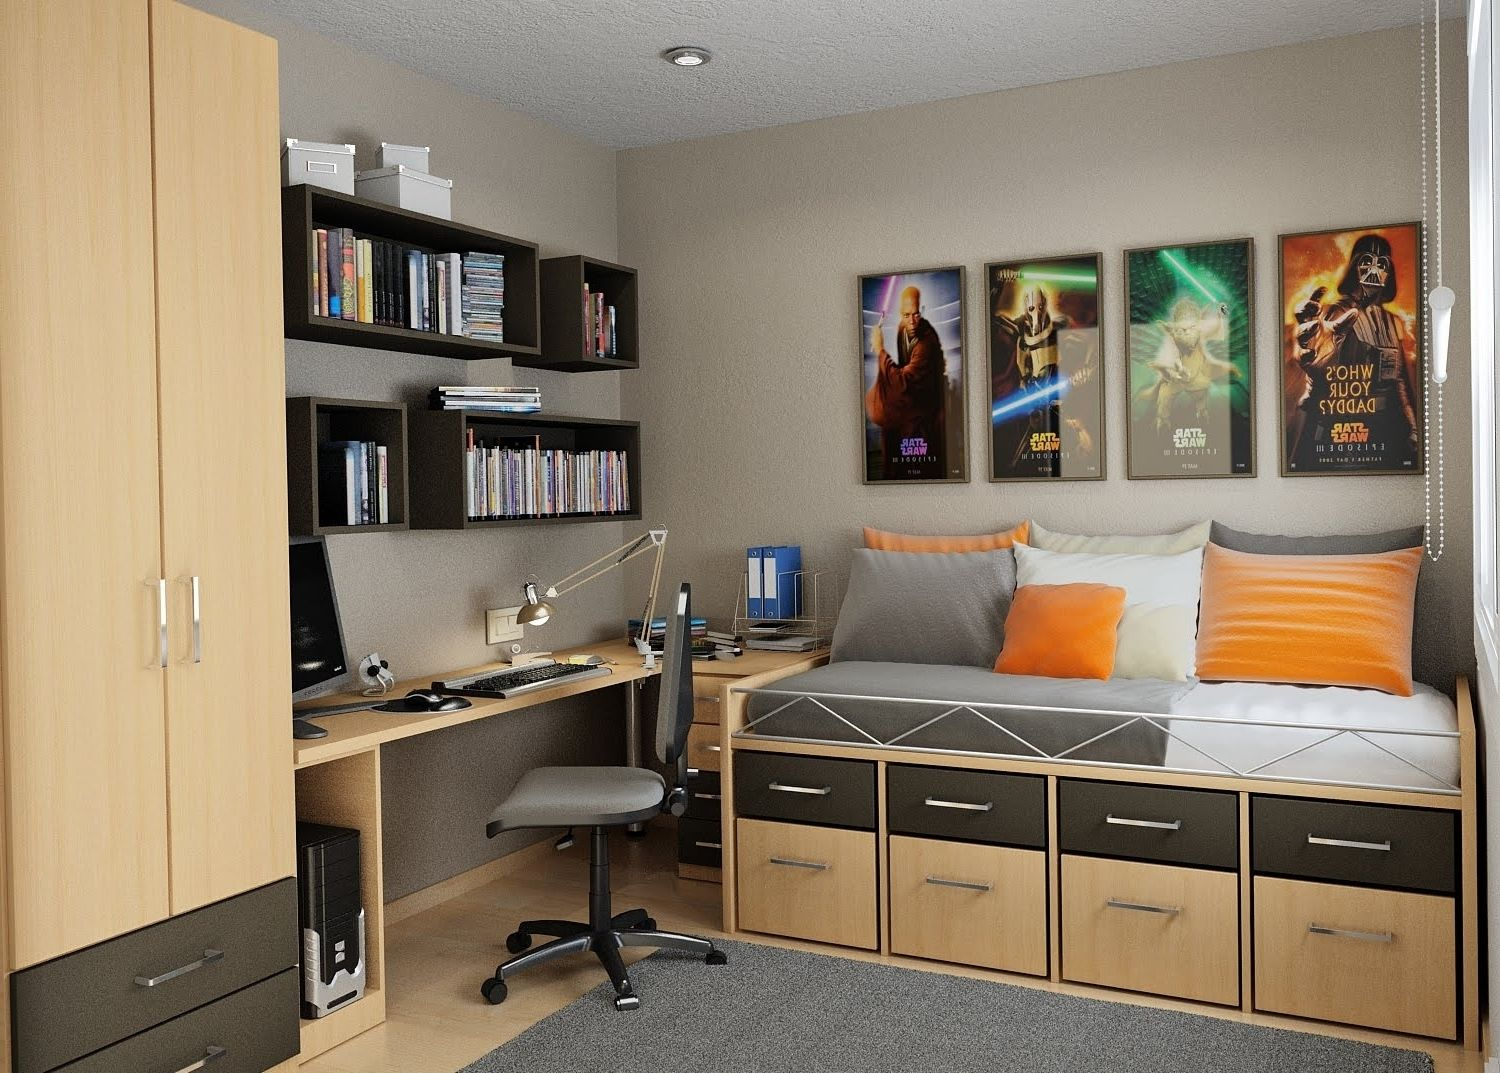 Cool Bedroom Ideas For Teenage Guys Small Rooms Home Office Design Small Space Bedroom Small Room Design